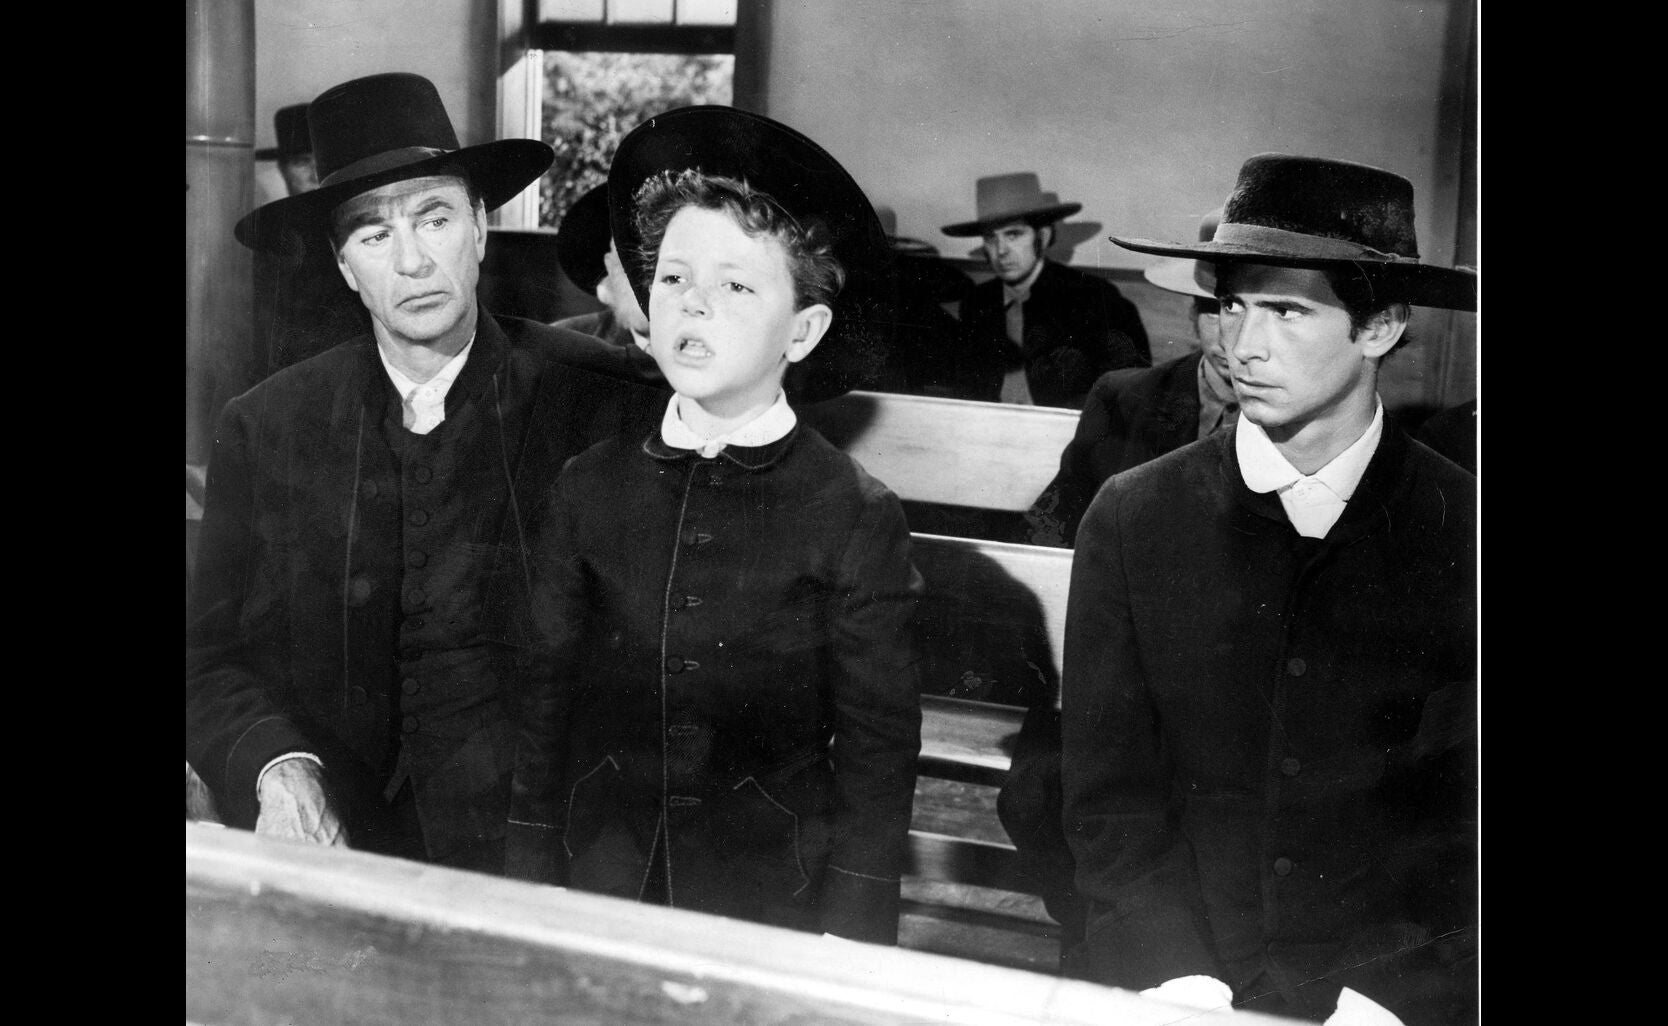 Scene from the movie Friendly Persuasion